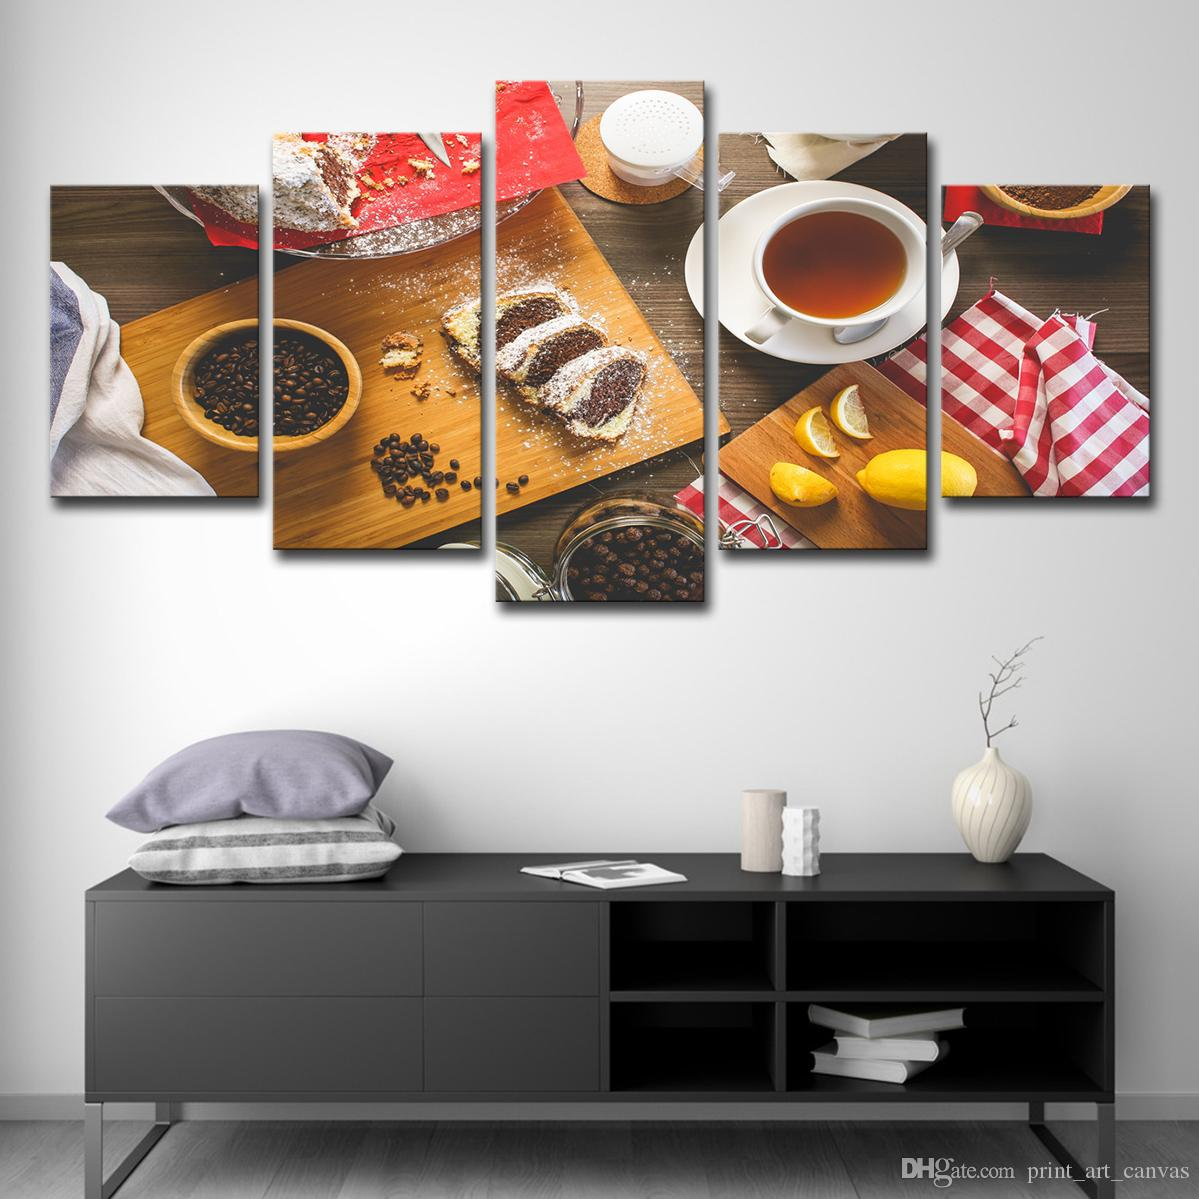 Gentil 2019 Canvas Pictures Kitchen Wall Art Home Decor Restaurant Fruits Foods  Coffee Cake Painting Modern HD Printed Poster From Print_art_canvas, ...